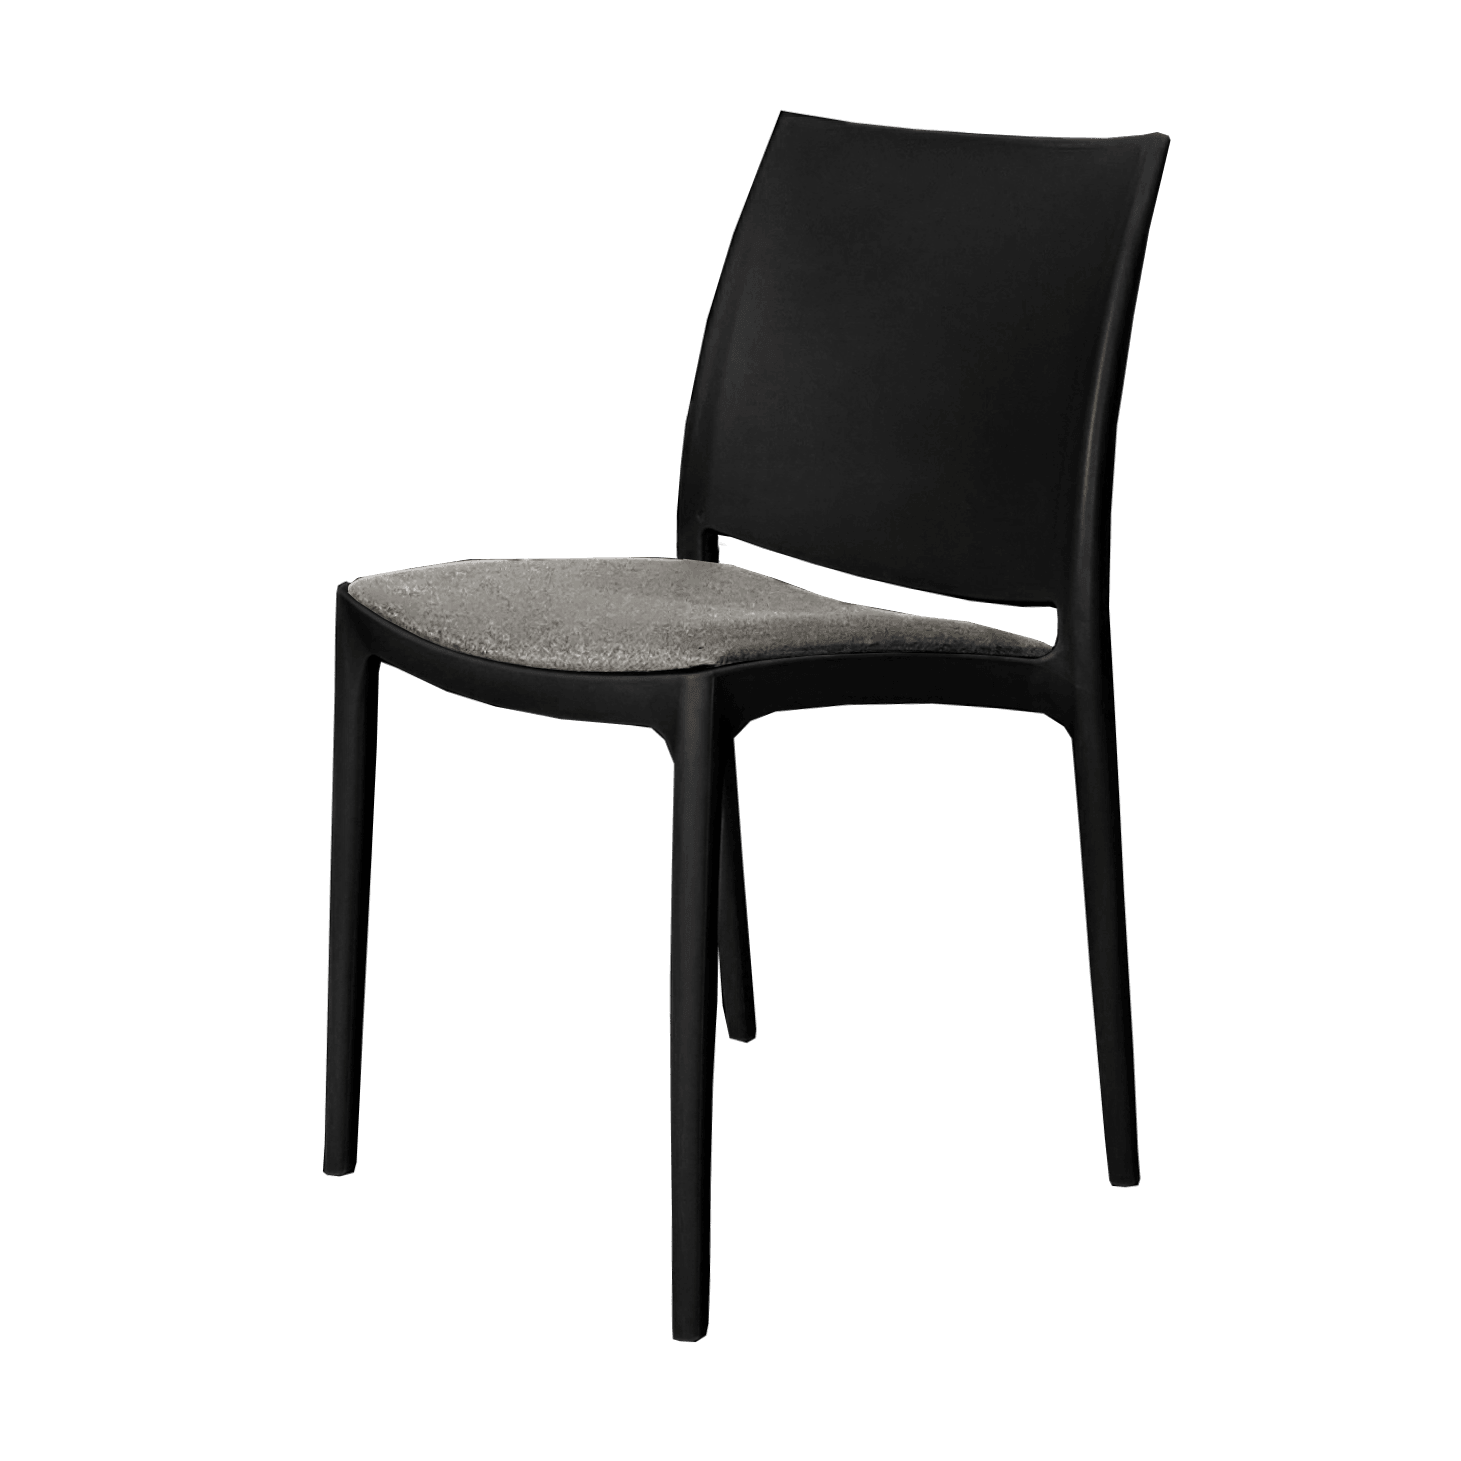 Seat Cushion - Anthracite Fabric (Maya Chair)